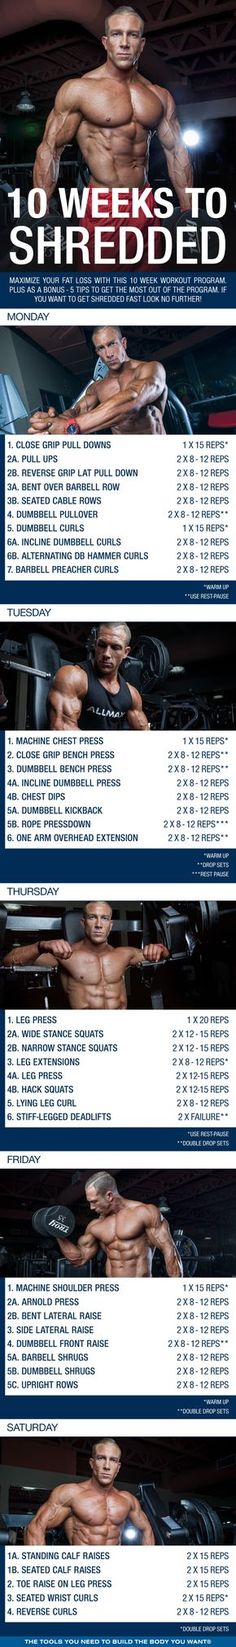 (Click through to download PDF!) Maximize your fat loss for the rest of summer with this 10 week workout program. Plus as a bonus - 5 tips to get the most fat loss out of the program! #workout #gym #fitness #bodybuilding